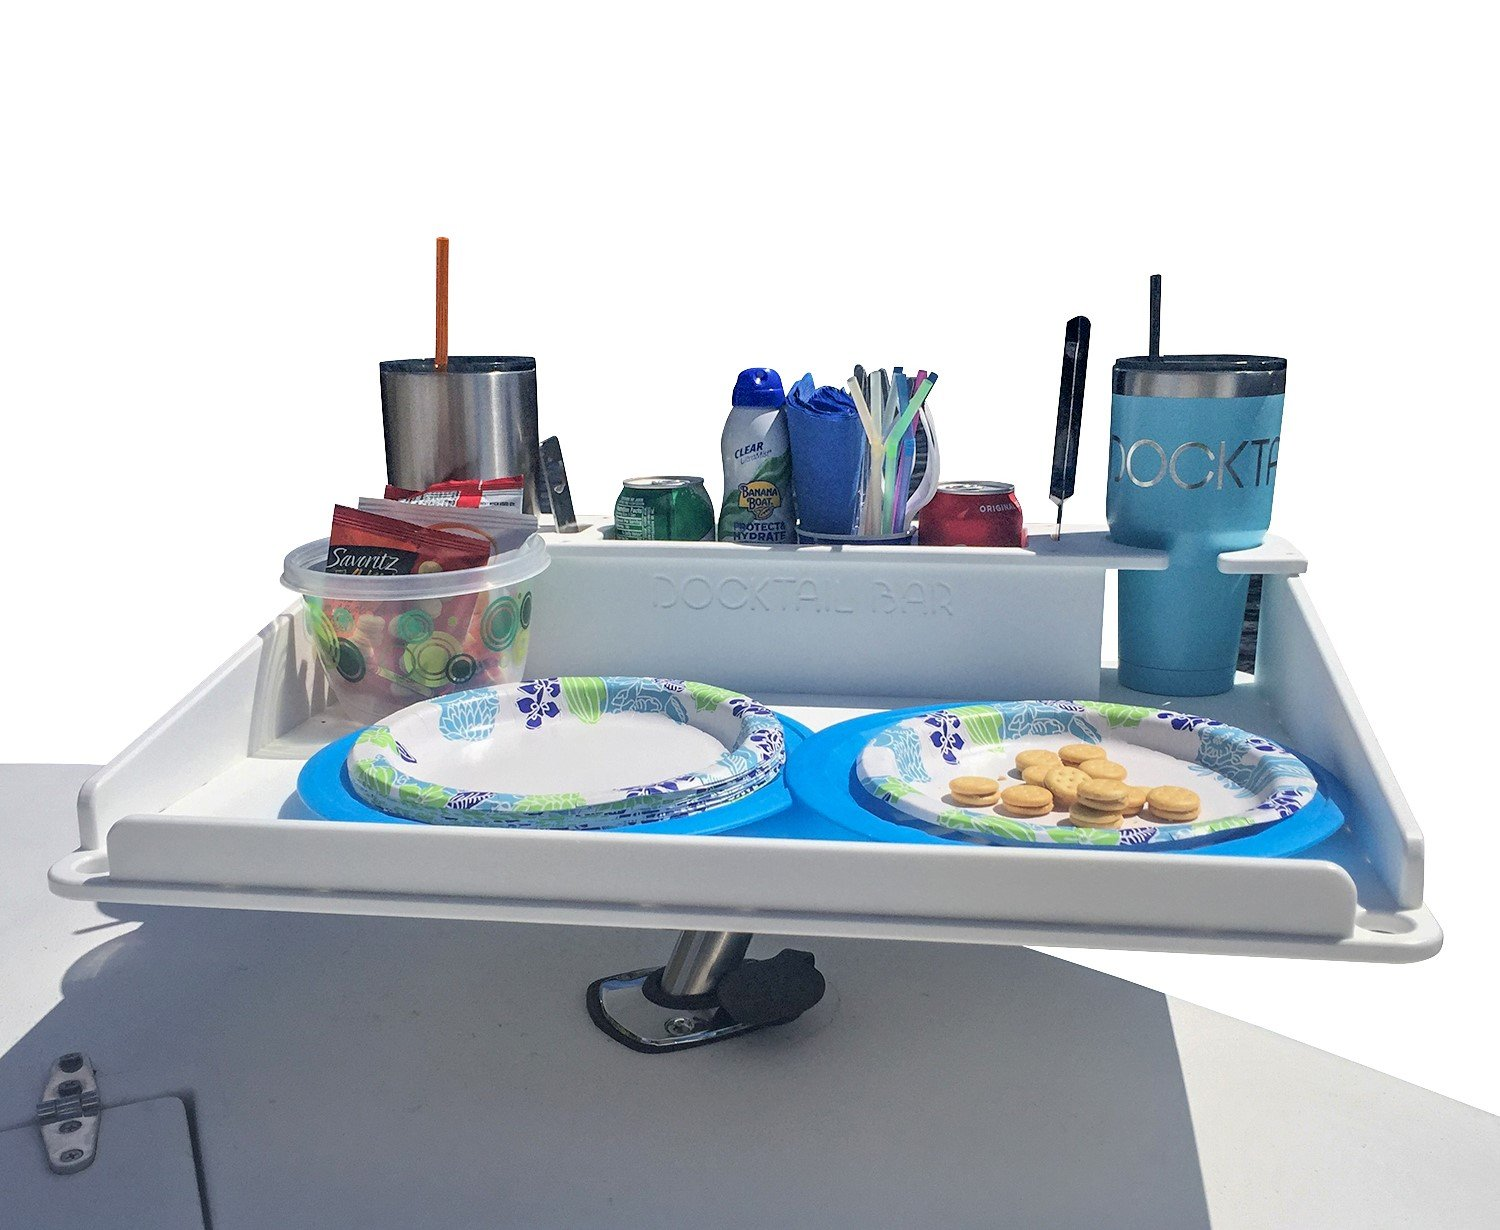 Docktail Bar Boat Utility Table with Cup Holders and Storage - Mounts in Rod Holders - Package Includes Fully Adjustable Rod Holder Mount - Perfect Boat & Marine Grill Accessory - Portable by Docktail® Bar